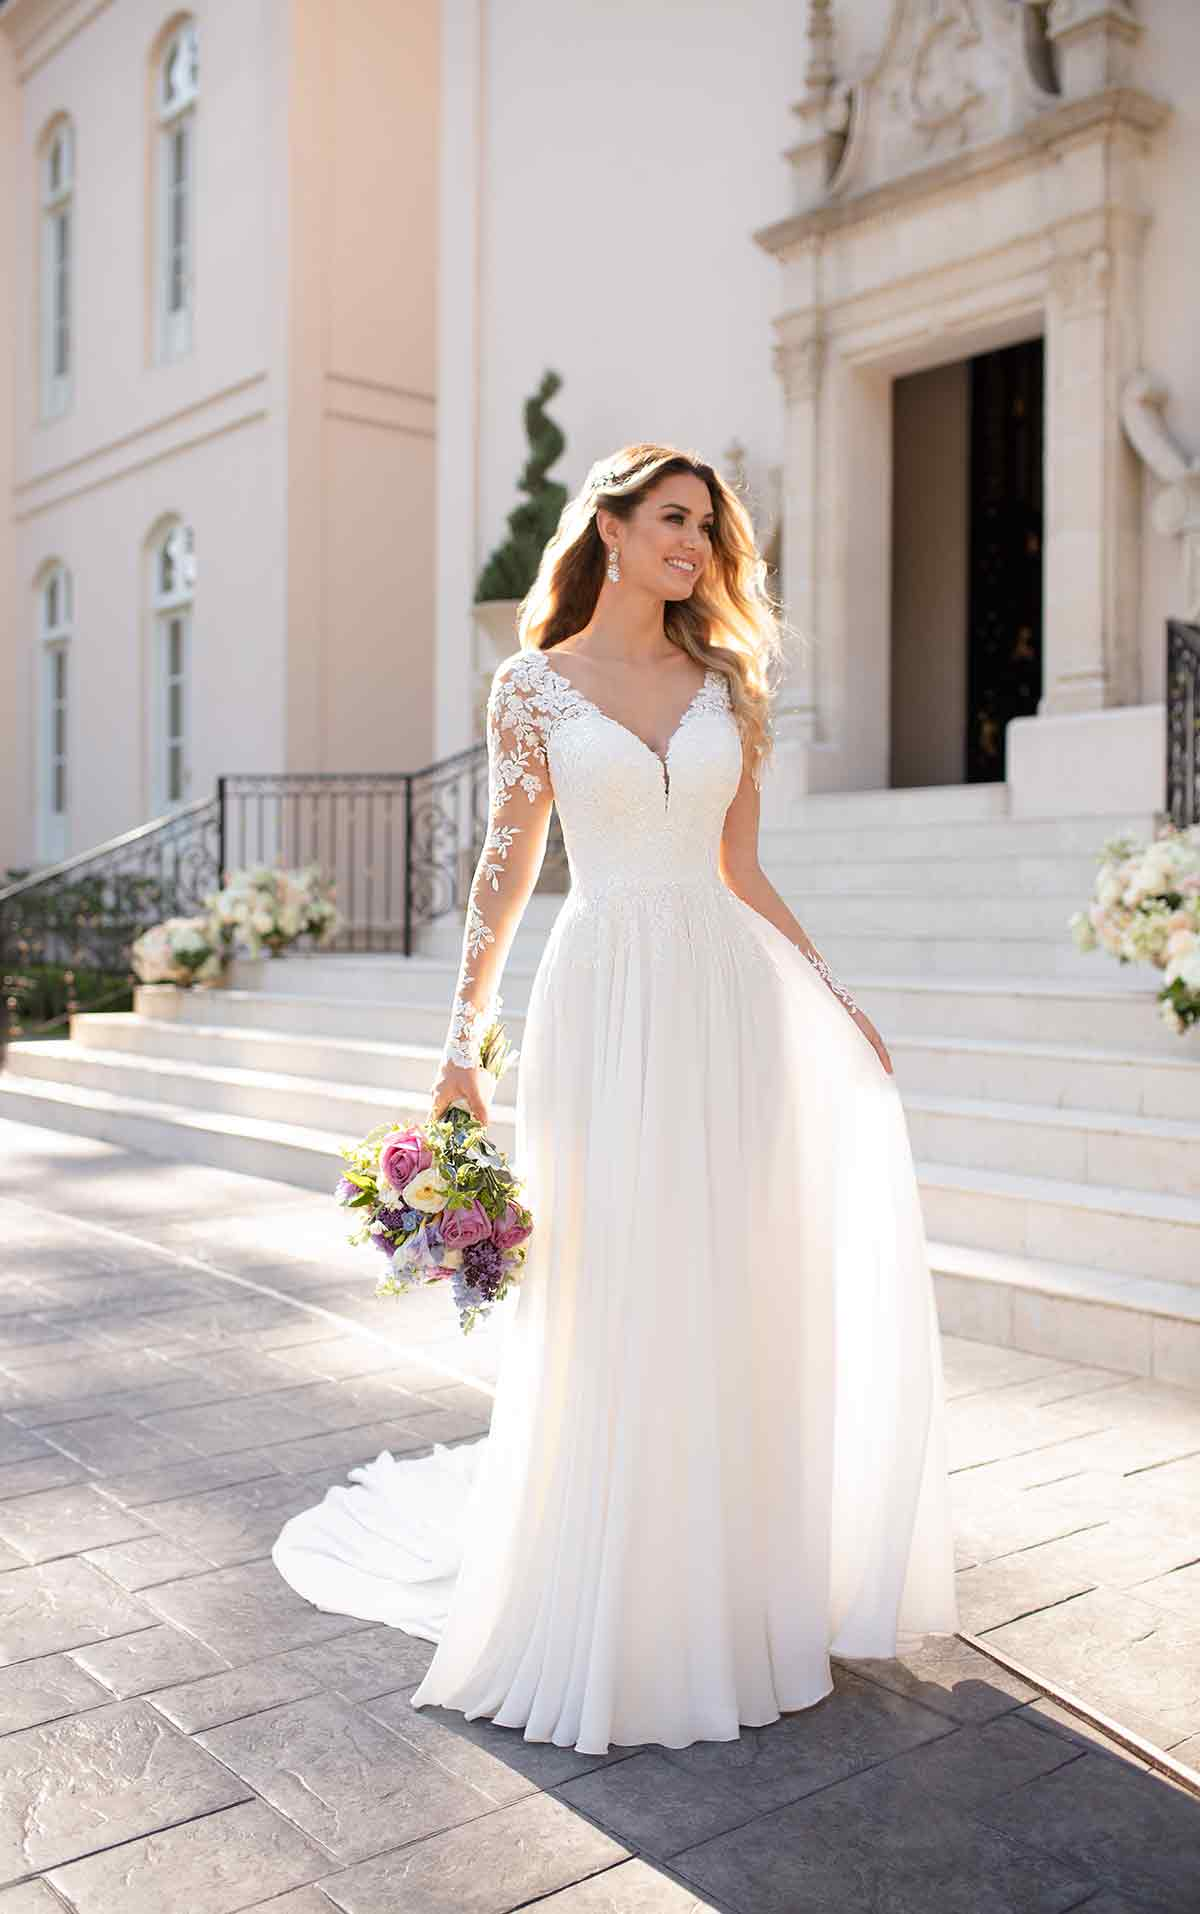 - This long sleeve Stella York wedding dress is sweet and simple for casual brides. The flow chiffon creates a sheath silhouette that is lightweight and comfortable.